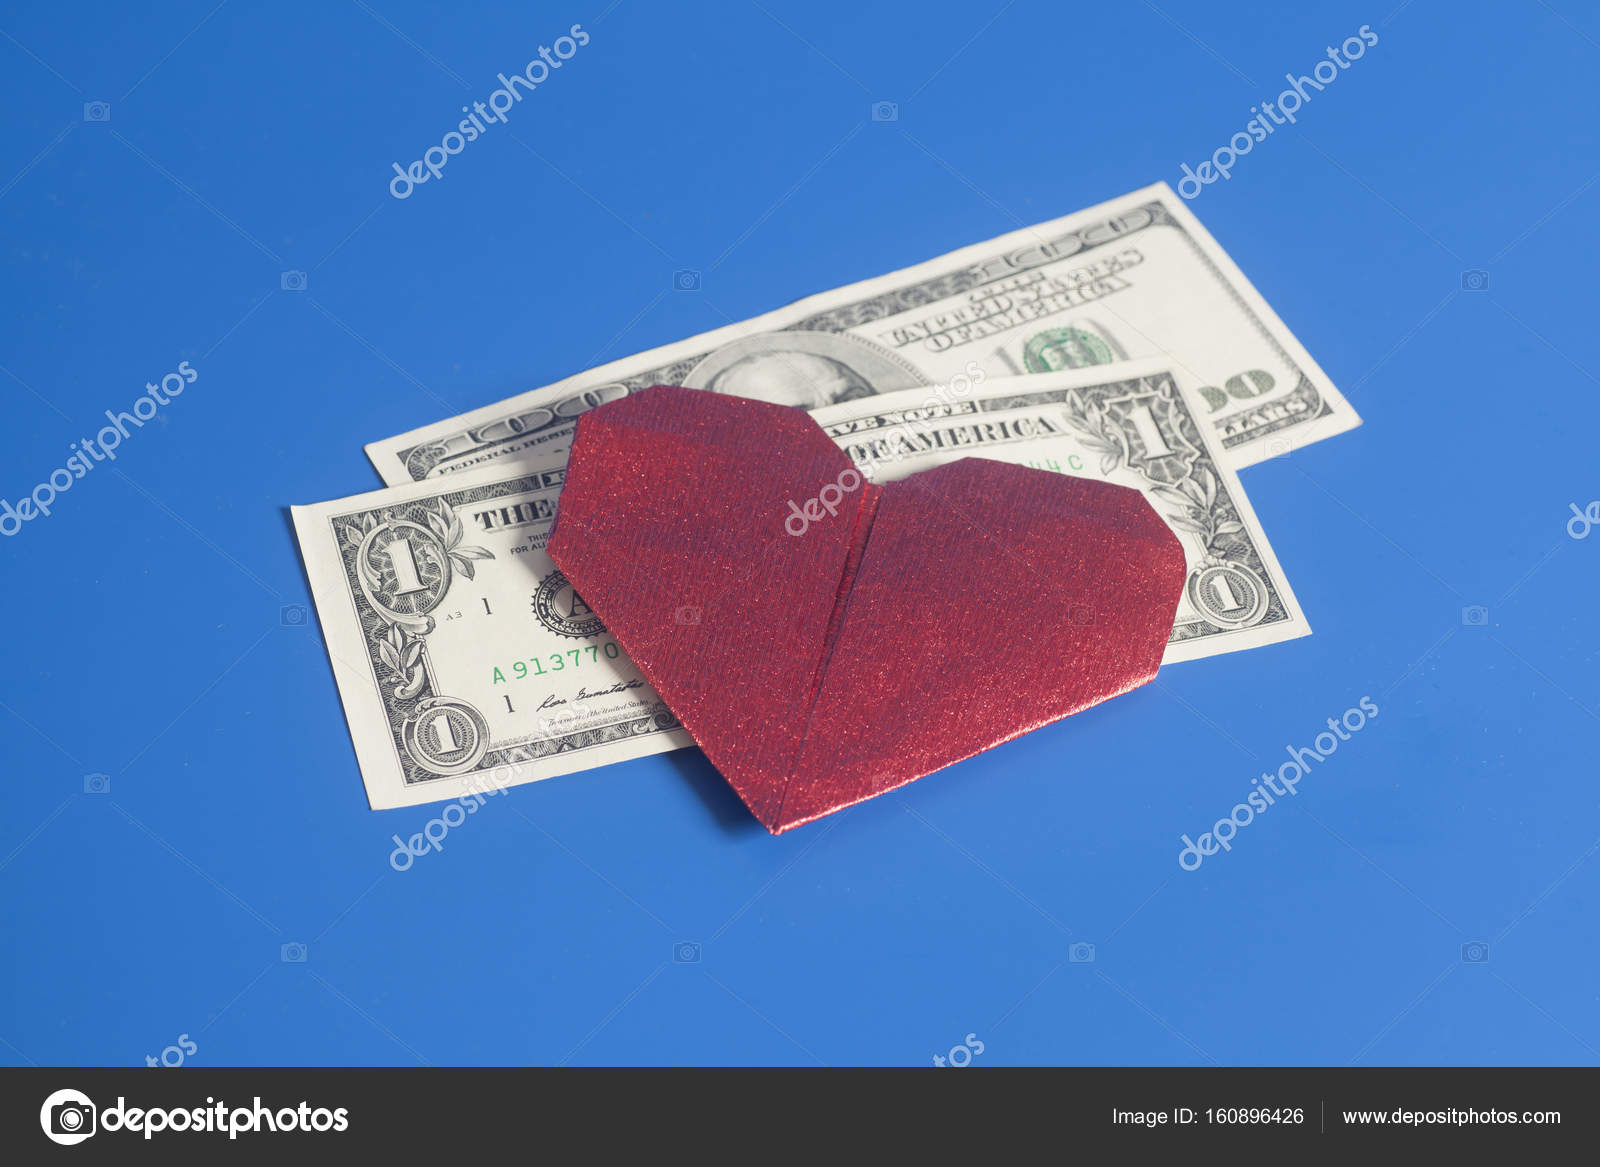 Red paper heart origami and dollar bills on blue background red paper heart origami and dollar bills on blue background stock photo jeuxipadfo Images